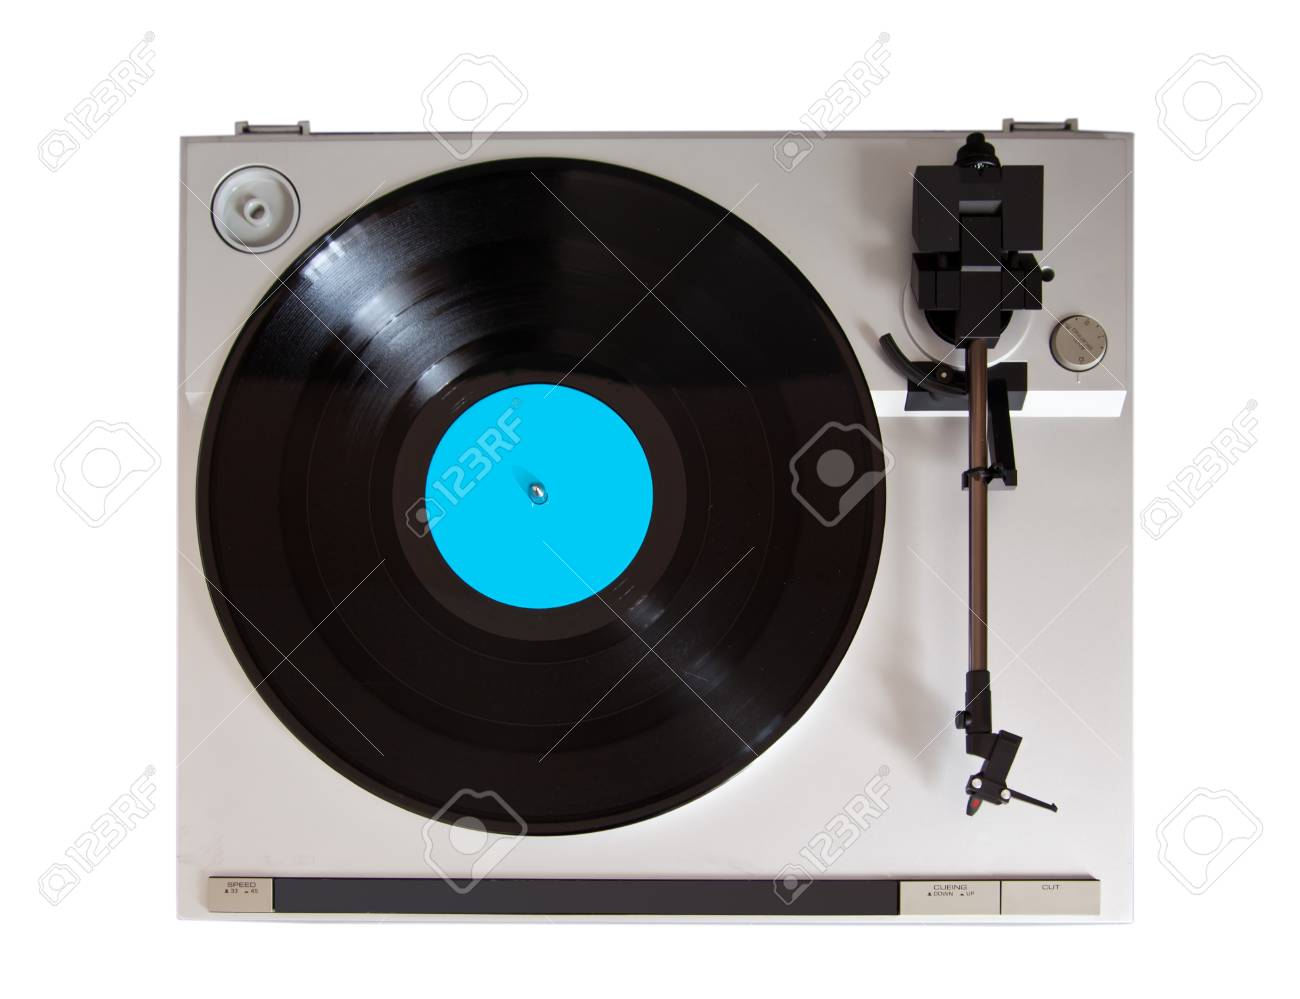 Analog Stereo Turntable Vinyl Record Player Stock Photo - 16664141